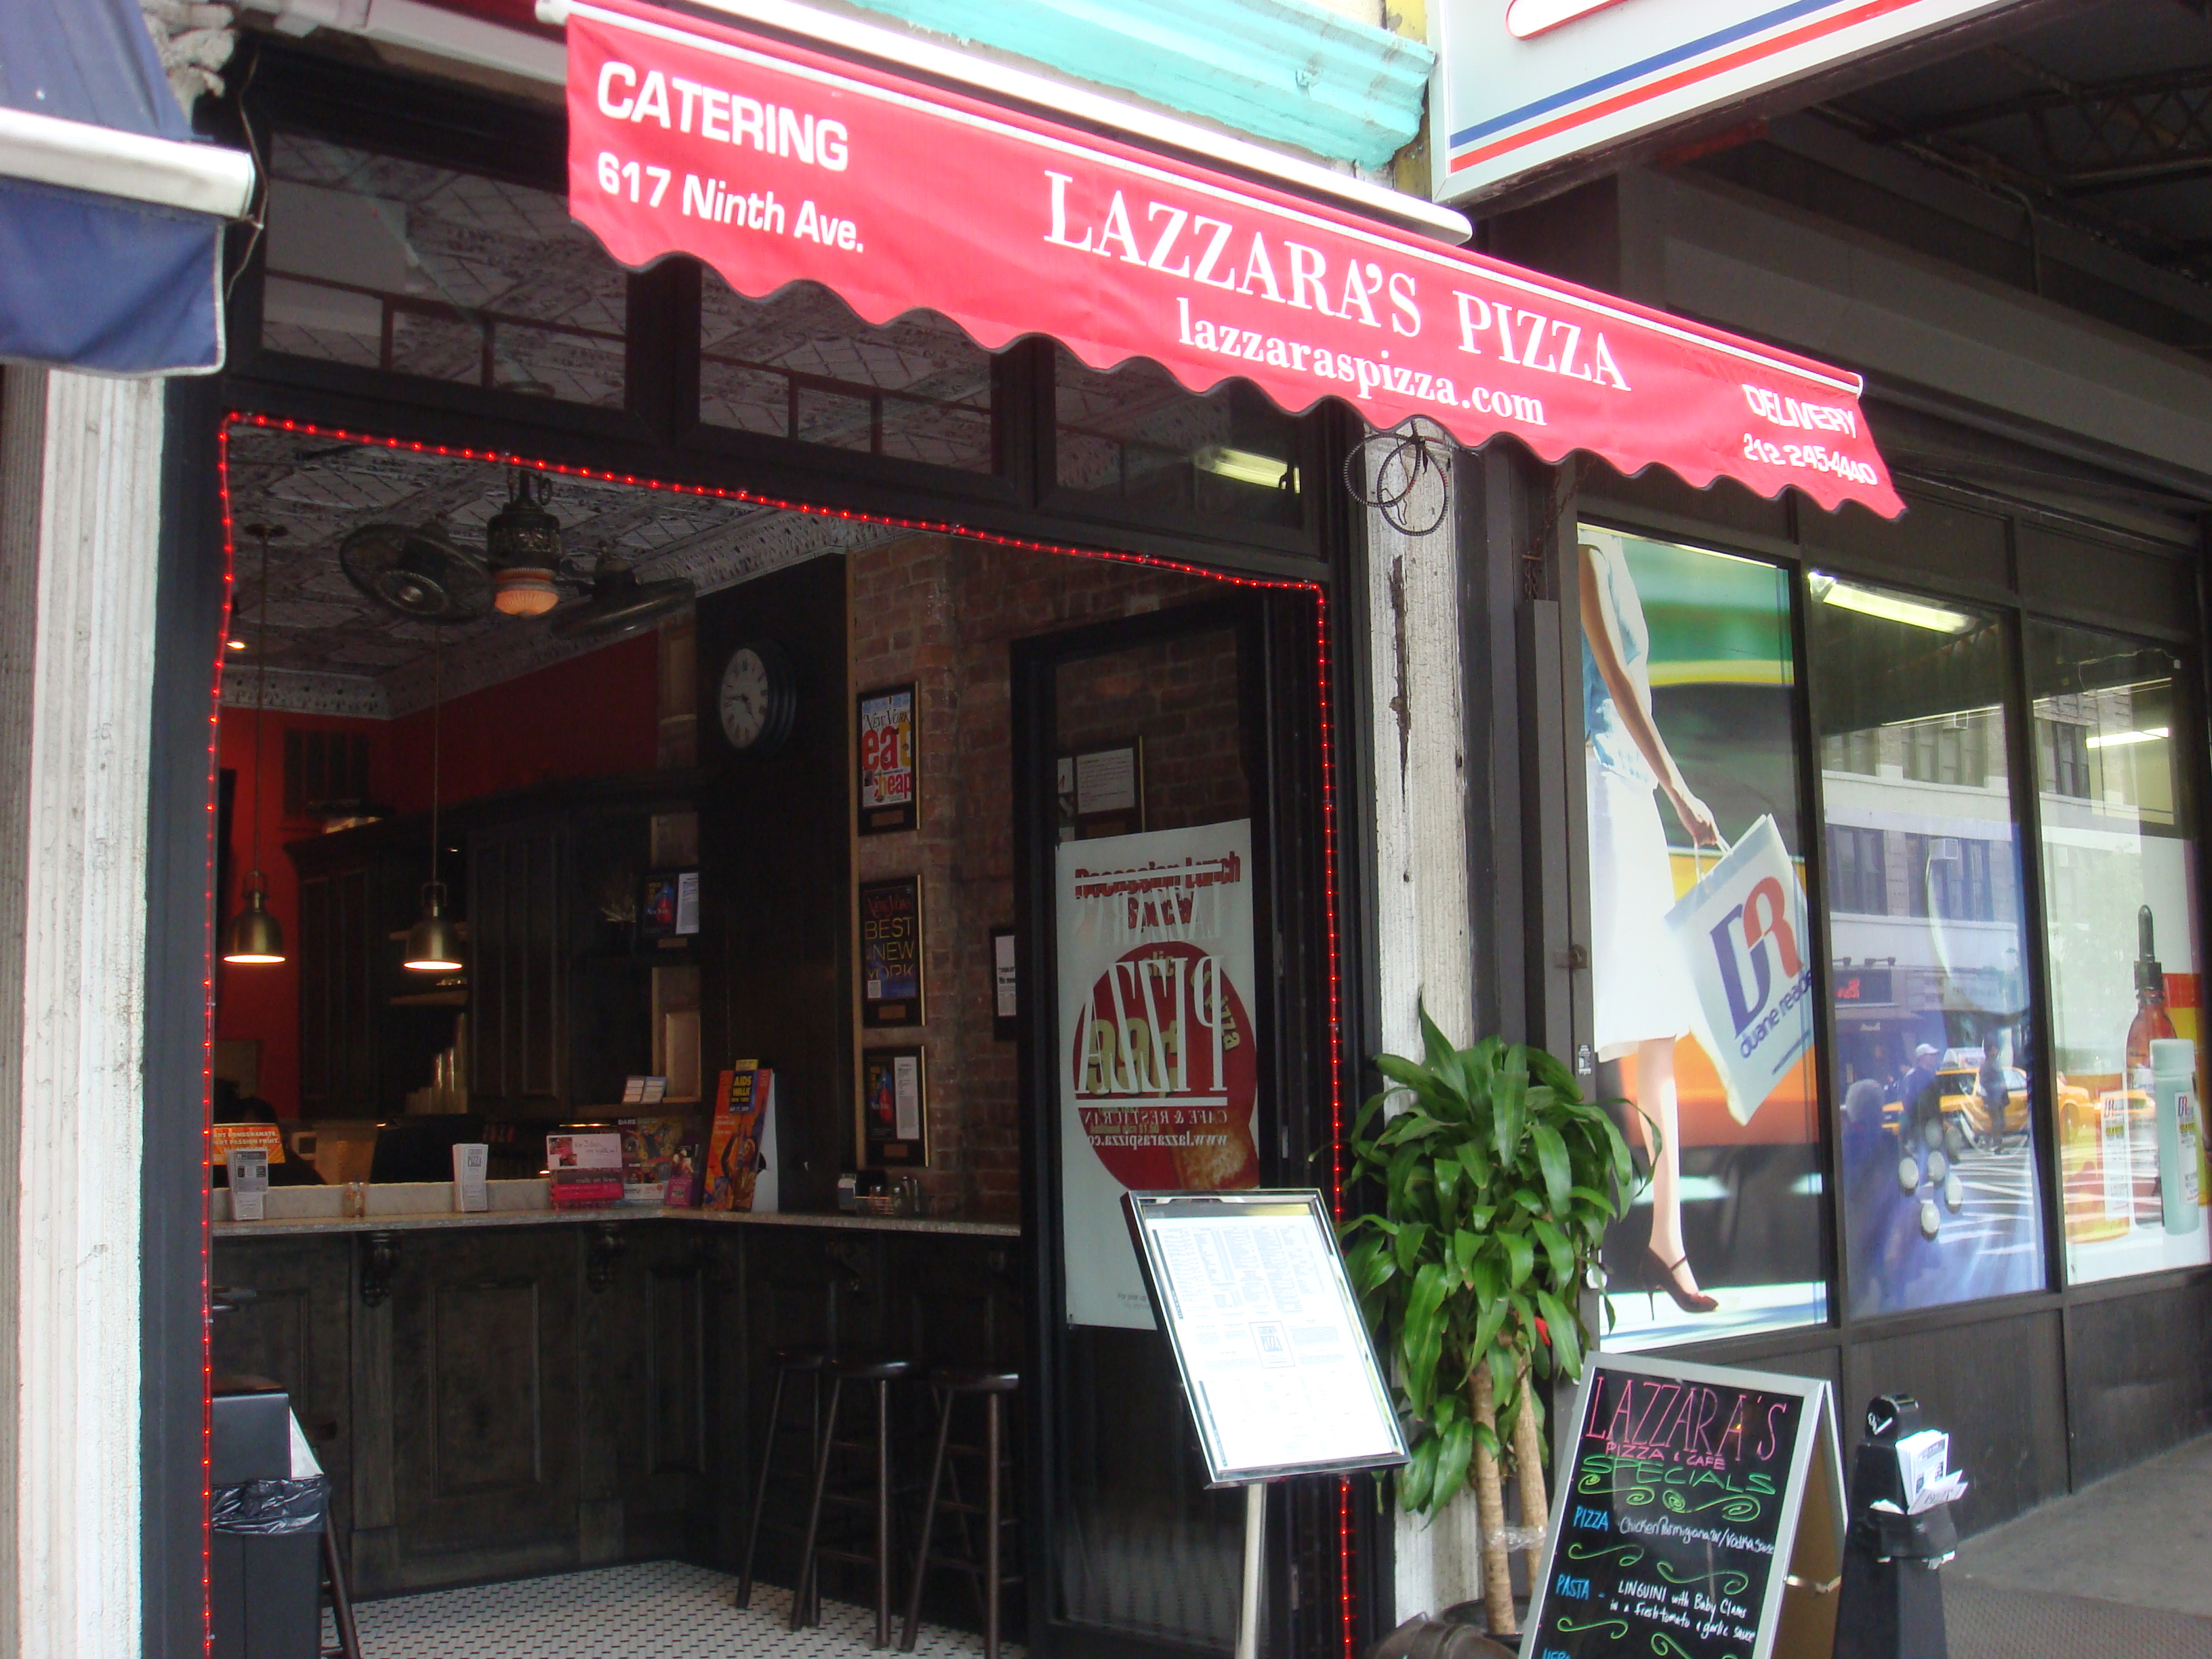 Lazzara's Pizza